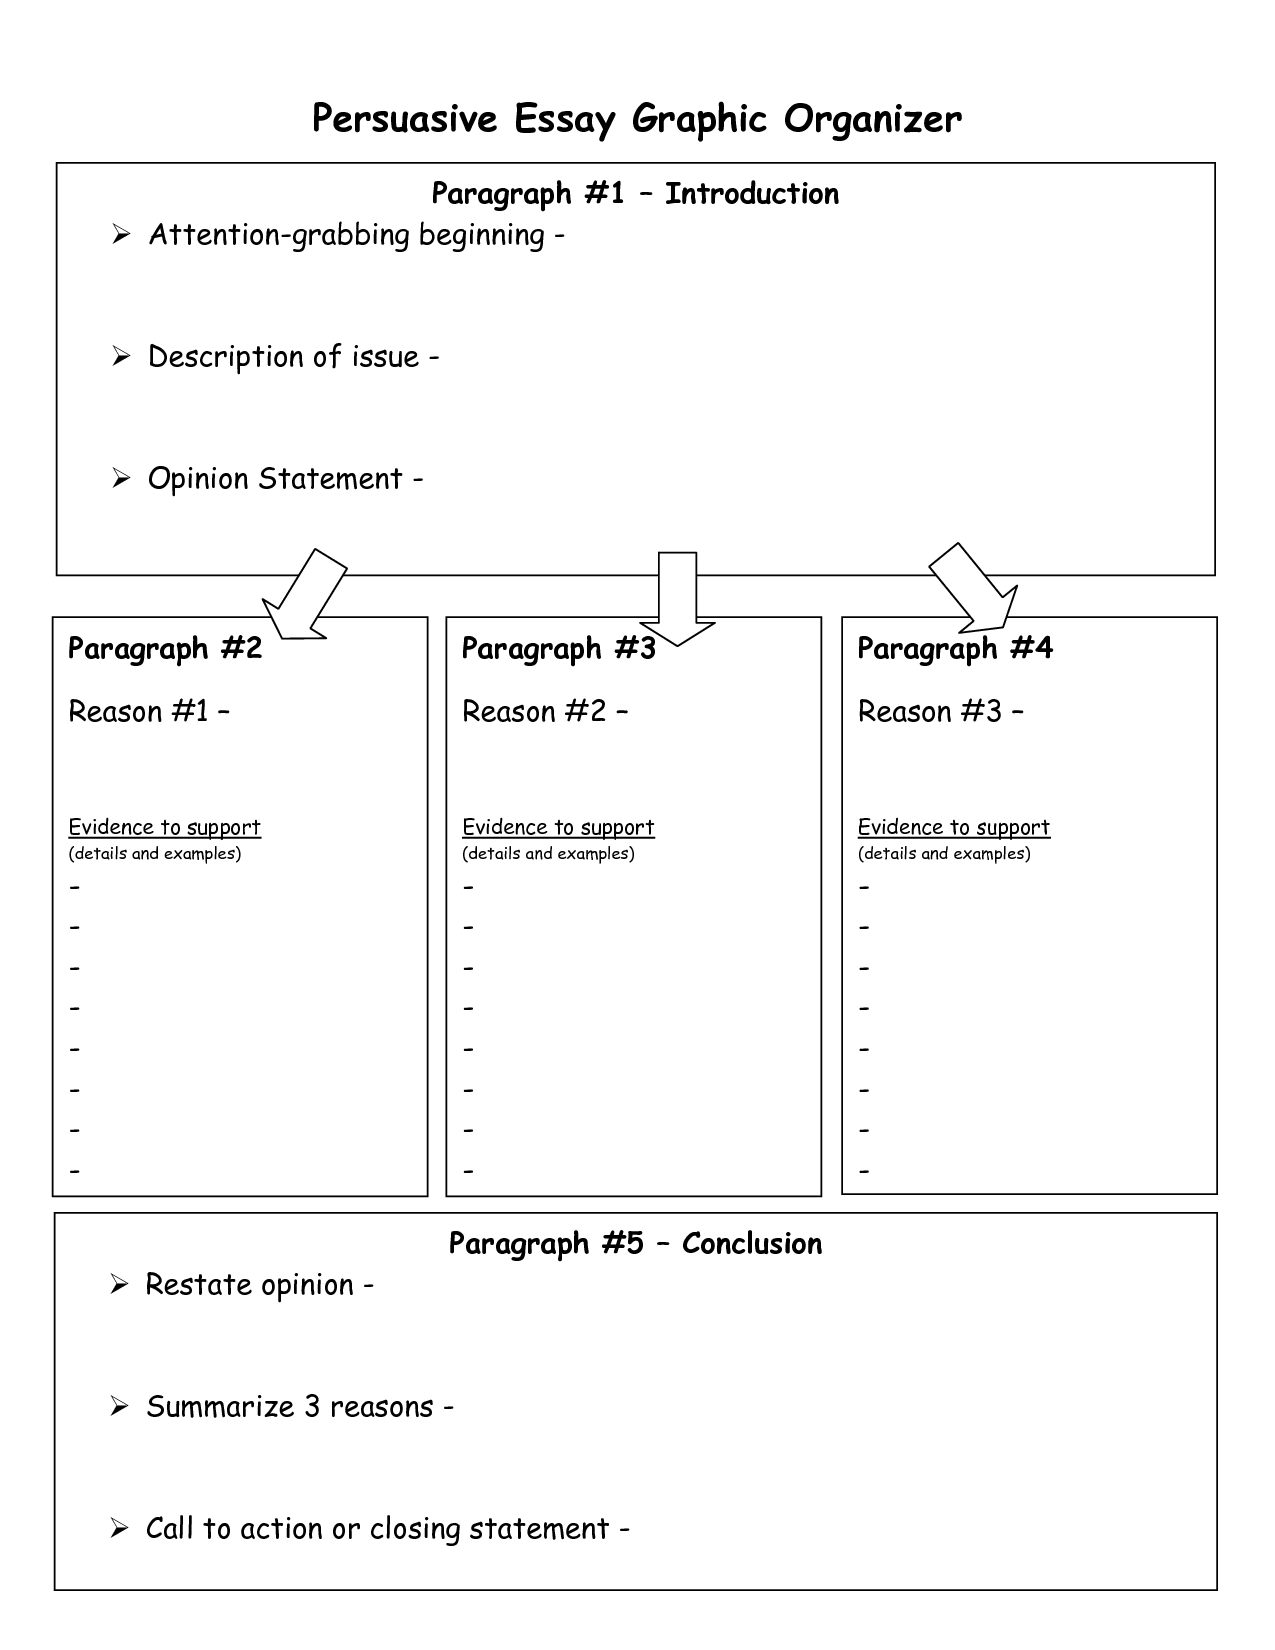 persuasive essay graphic organizer pdf writing 9 best images of argumentative writing graphic organizer persuasive essay graphic organizer pdf argument writing graphic organizer and argument writing